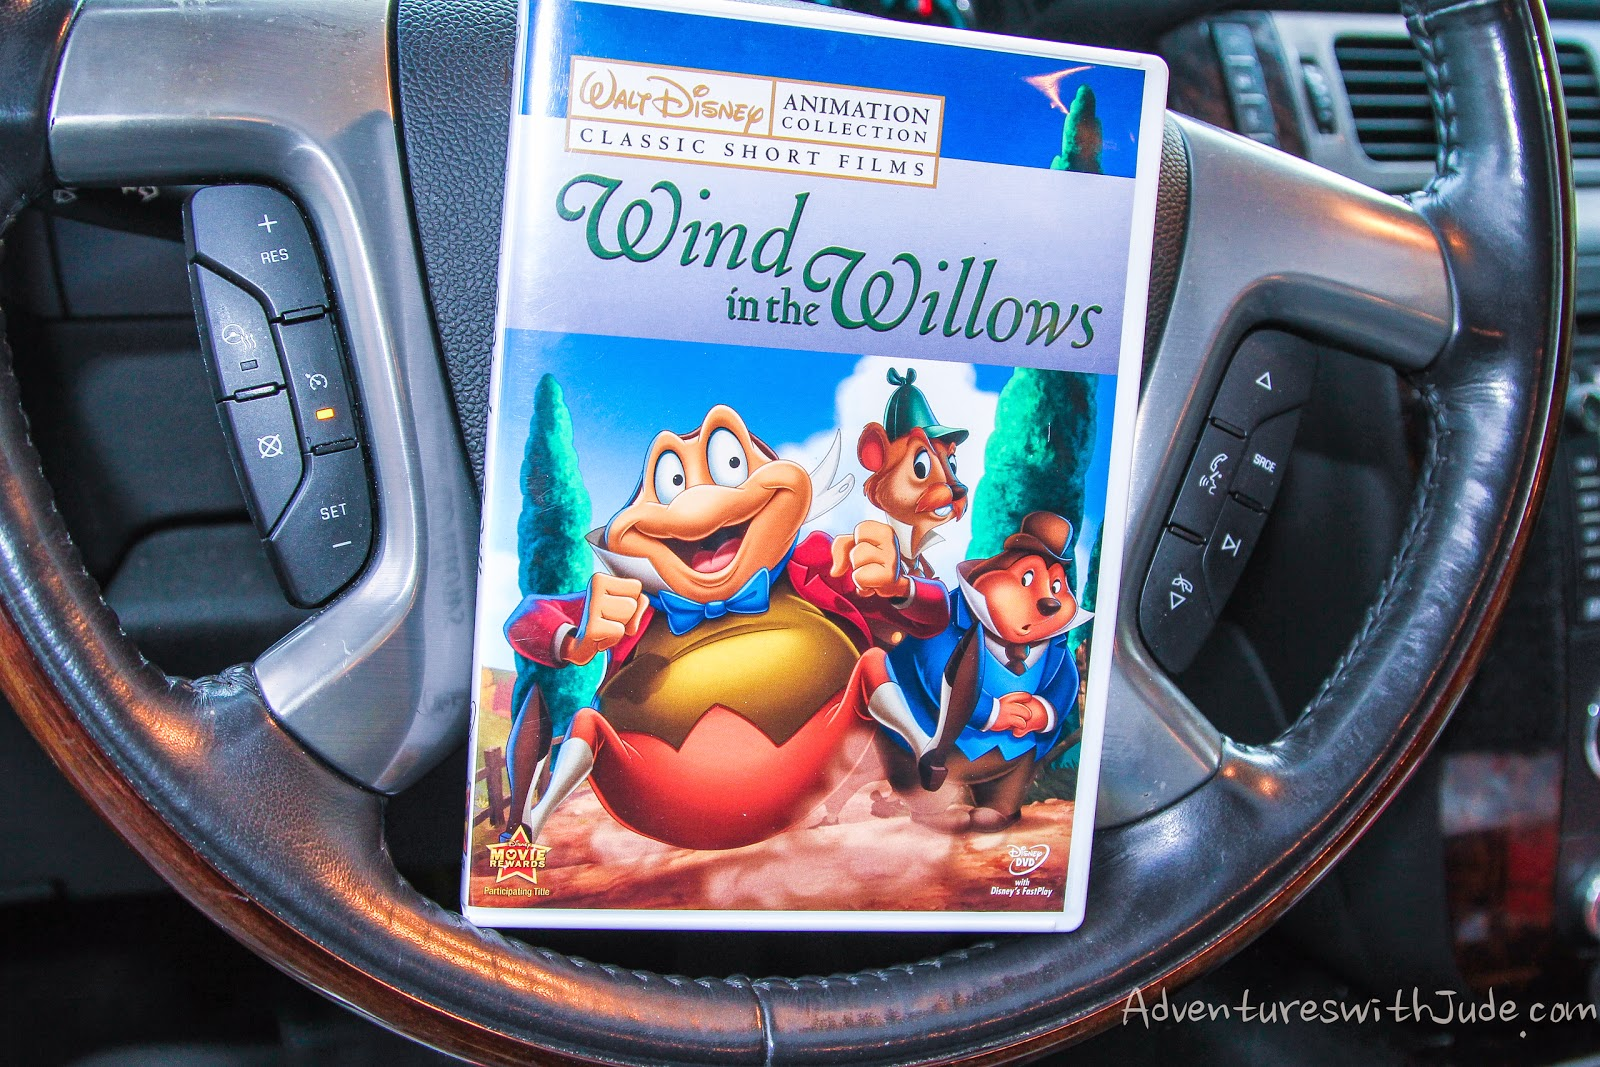 Disney Animation Classics The Wind in the Willows